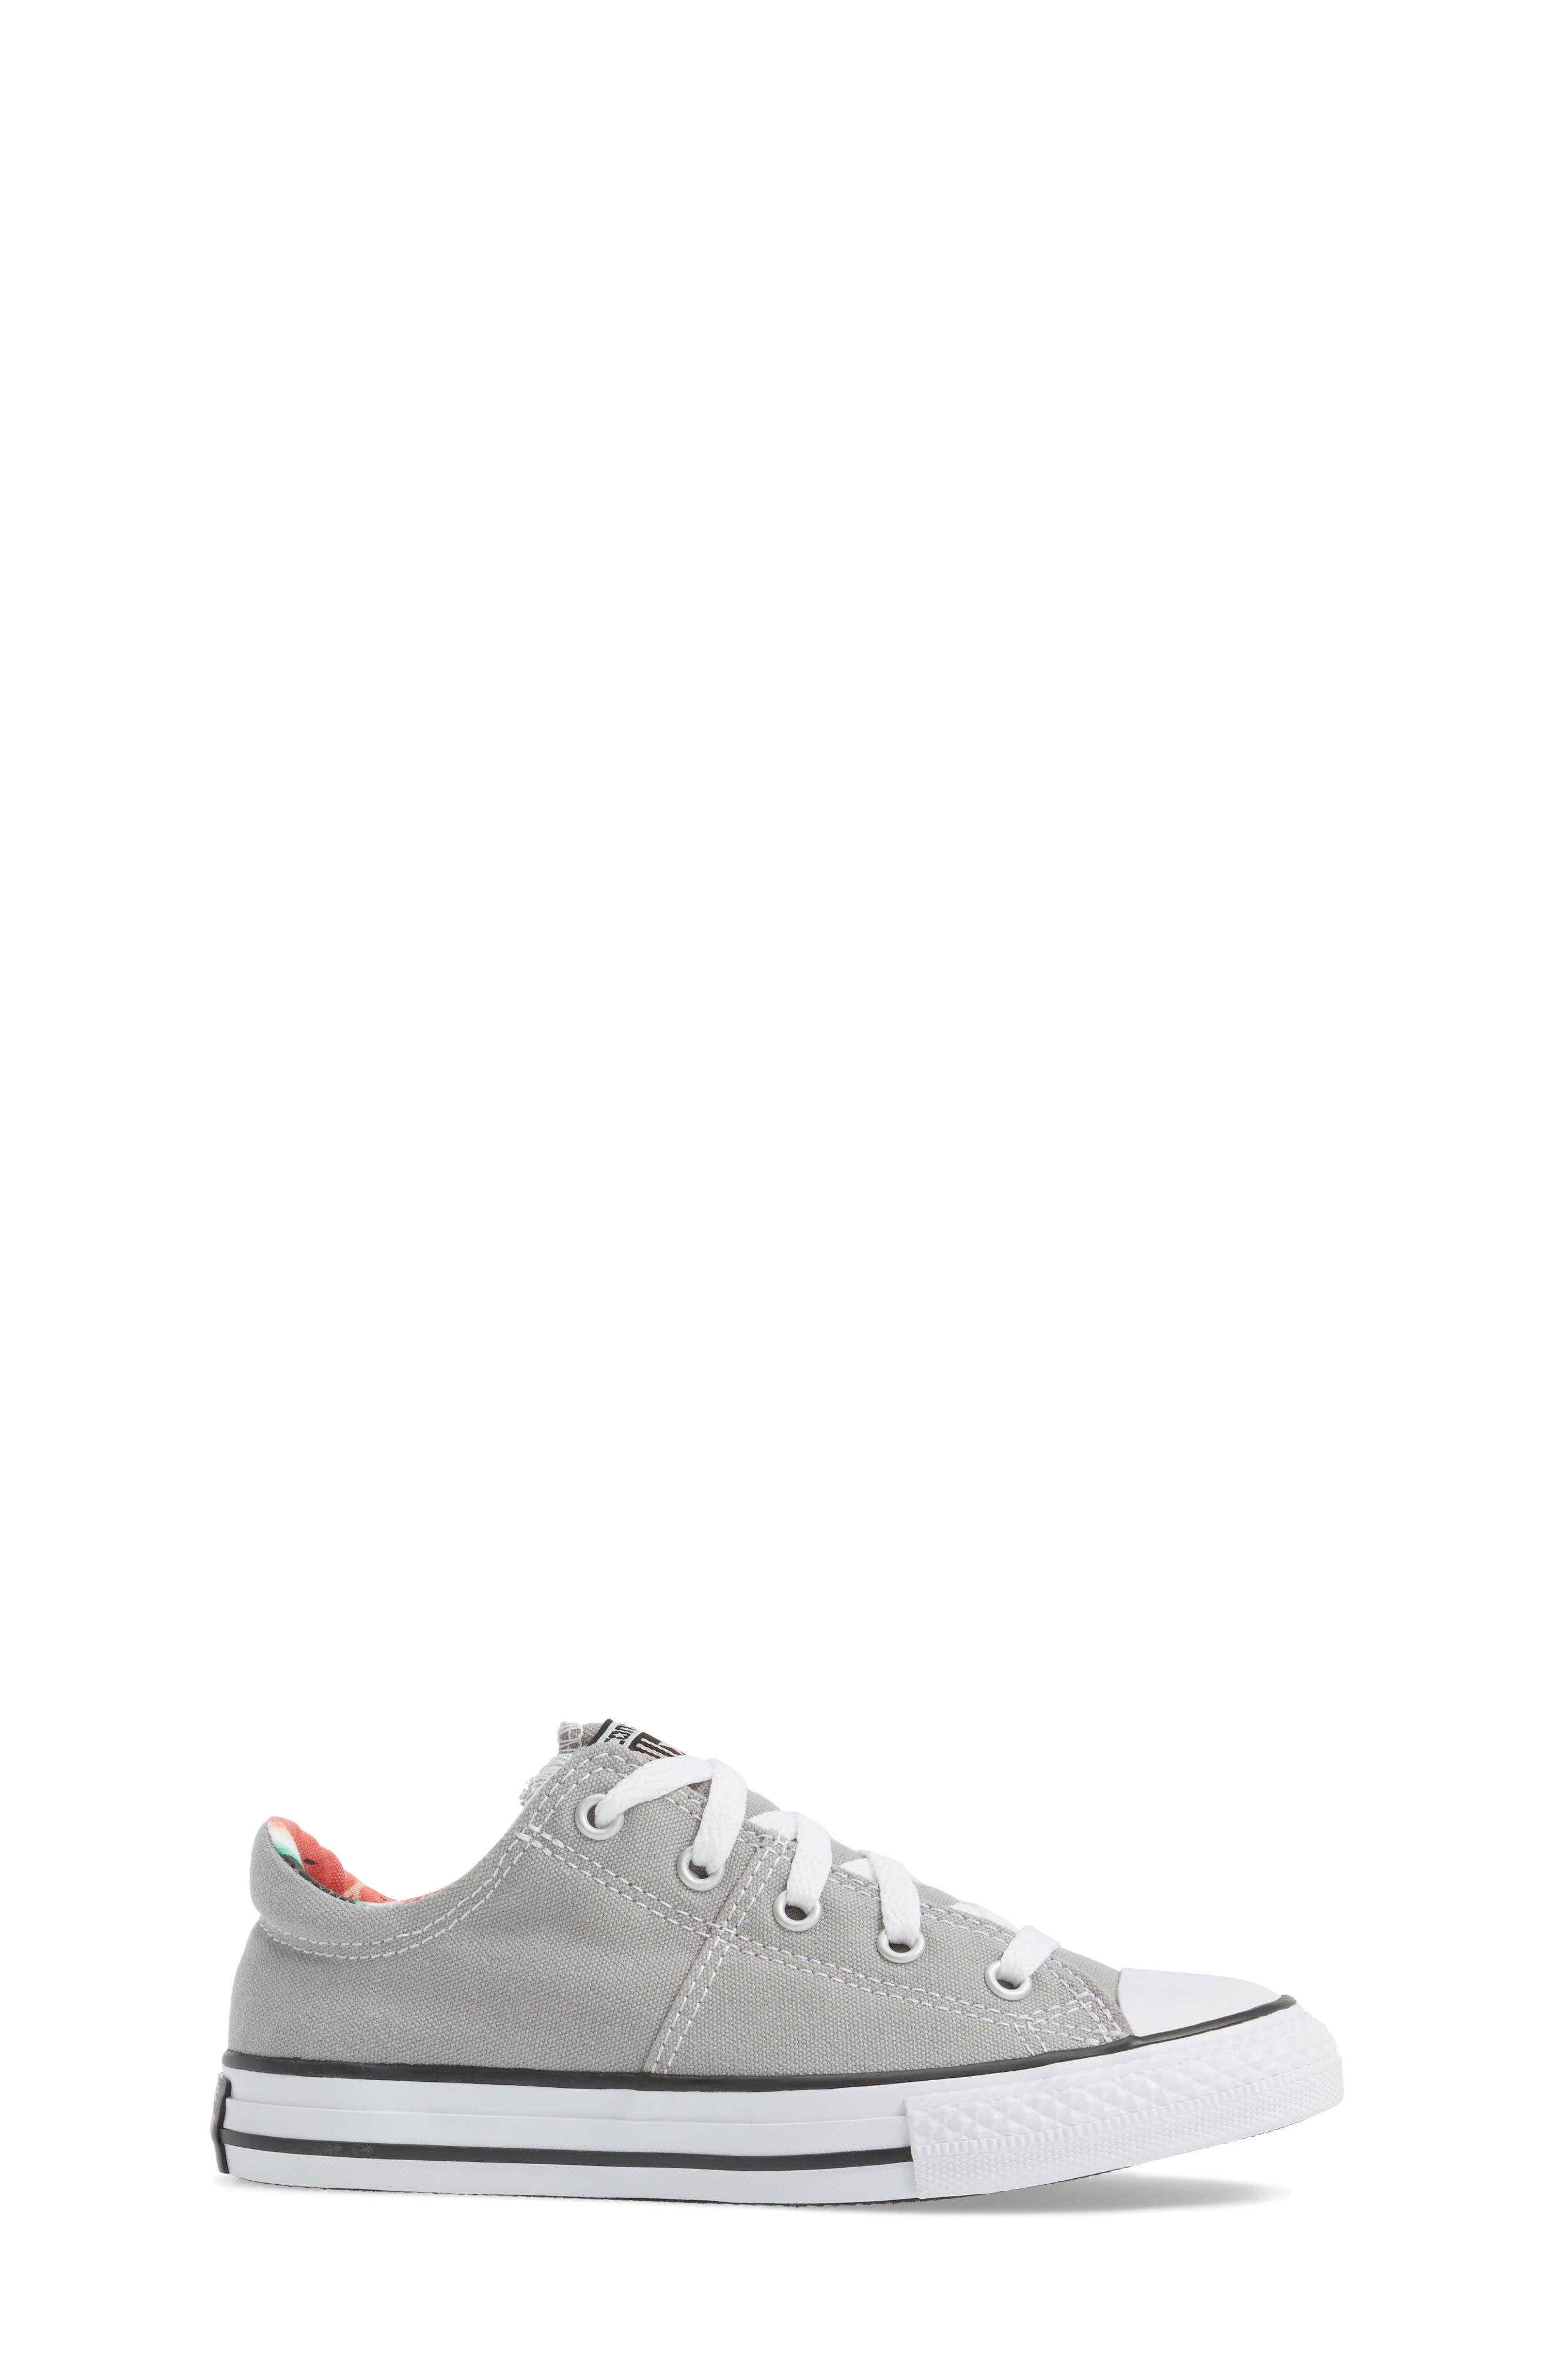 Chuck Taylor<sup>®</sup> All Star<sup>®</sup> Madison Low Top Sneaker,                             Alternate thumbnail 16, color,